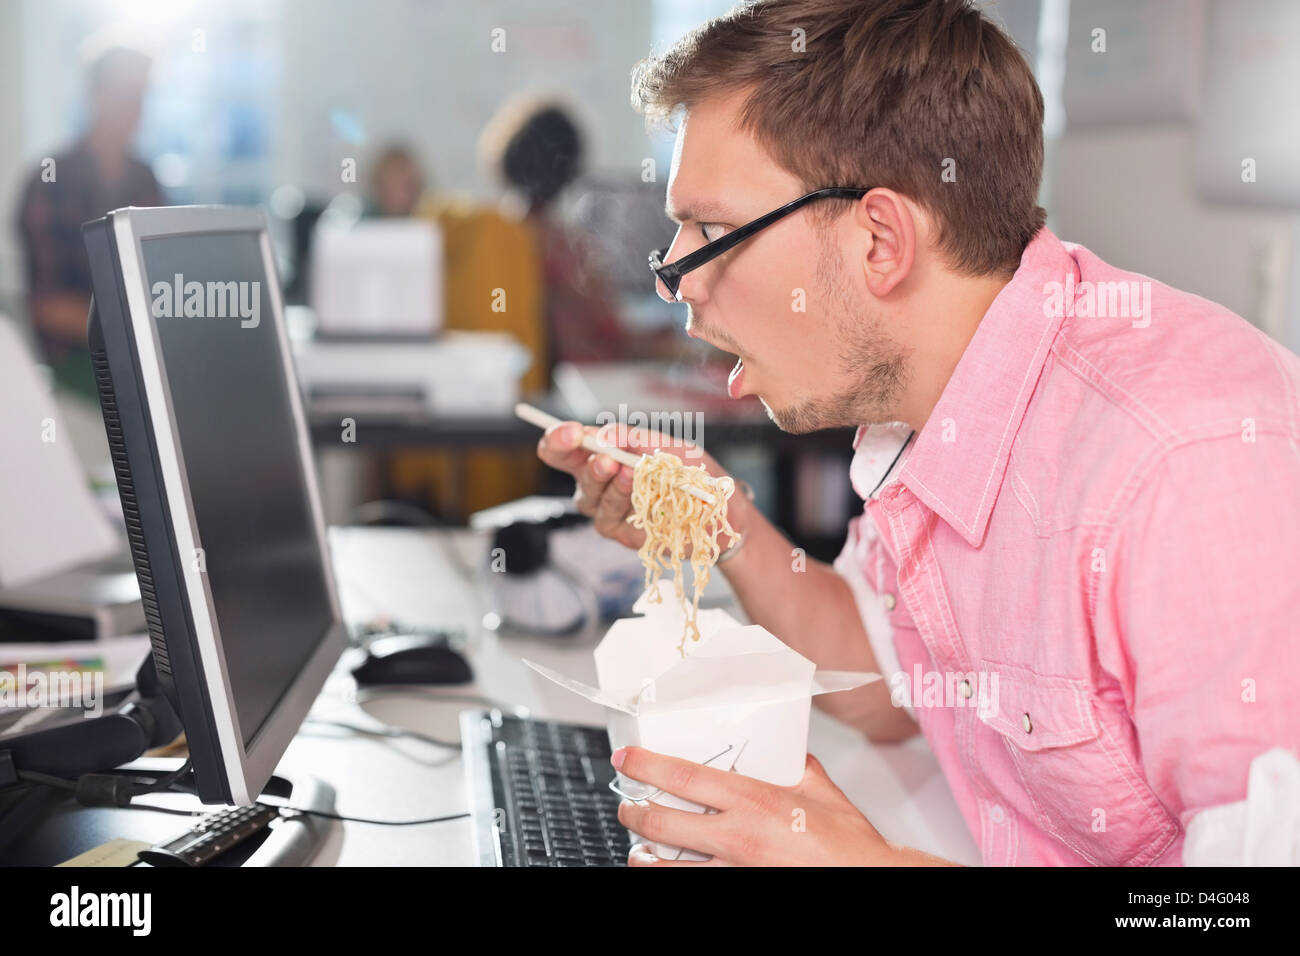 Businessman eating Chinese food at desk Photo Stock